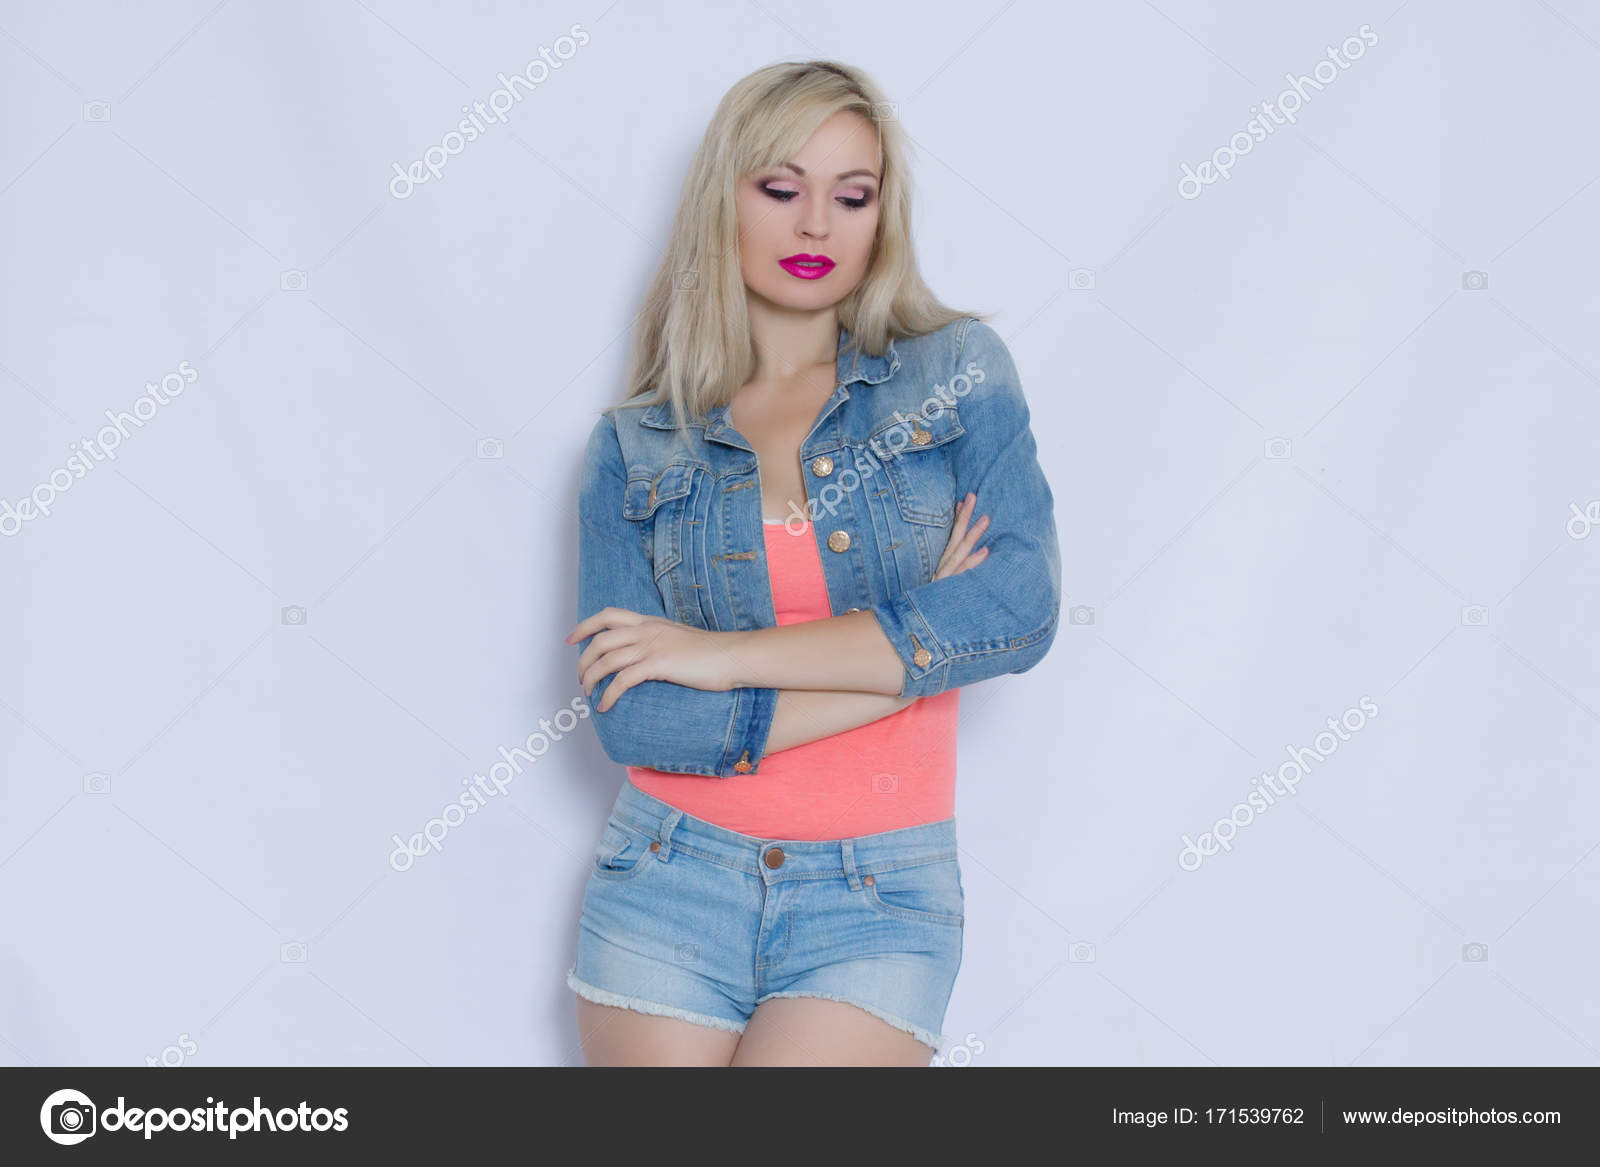 eb17f59efd2ee8 Beautiful blond young woman in pink tank top and jeans costume with shorts  and jacket posing and look to camera. Horizontal photos.